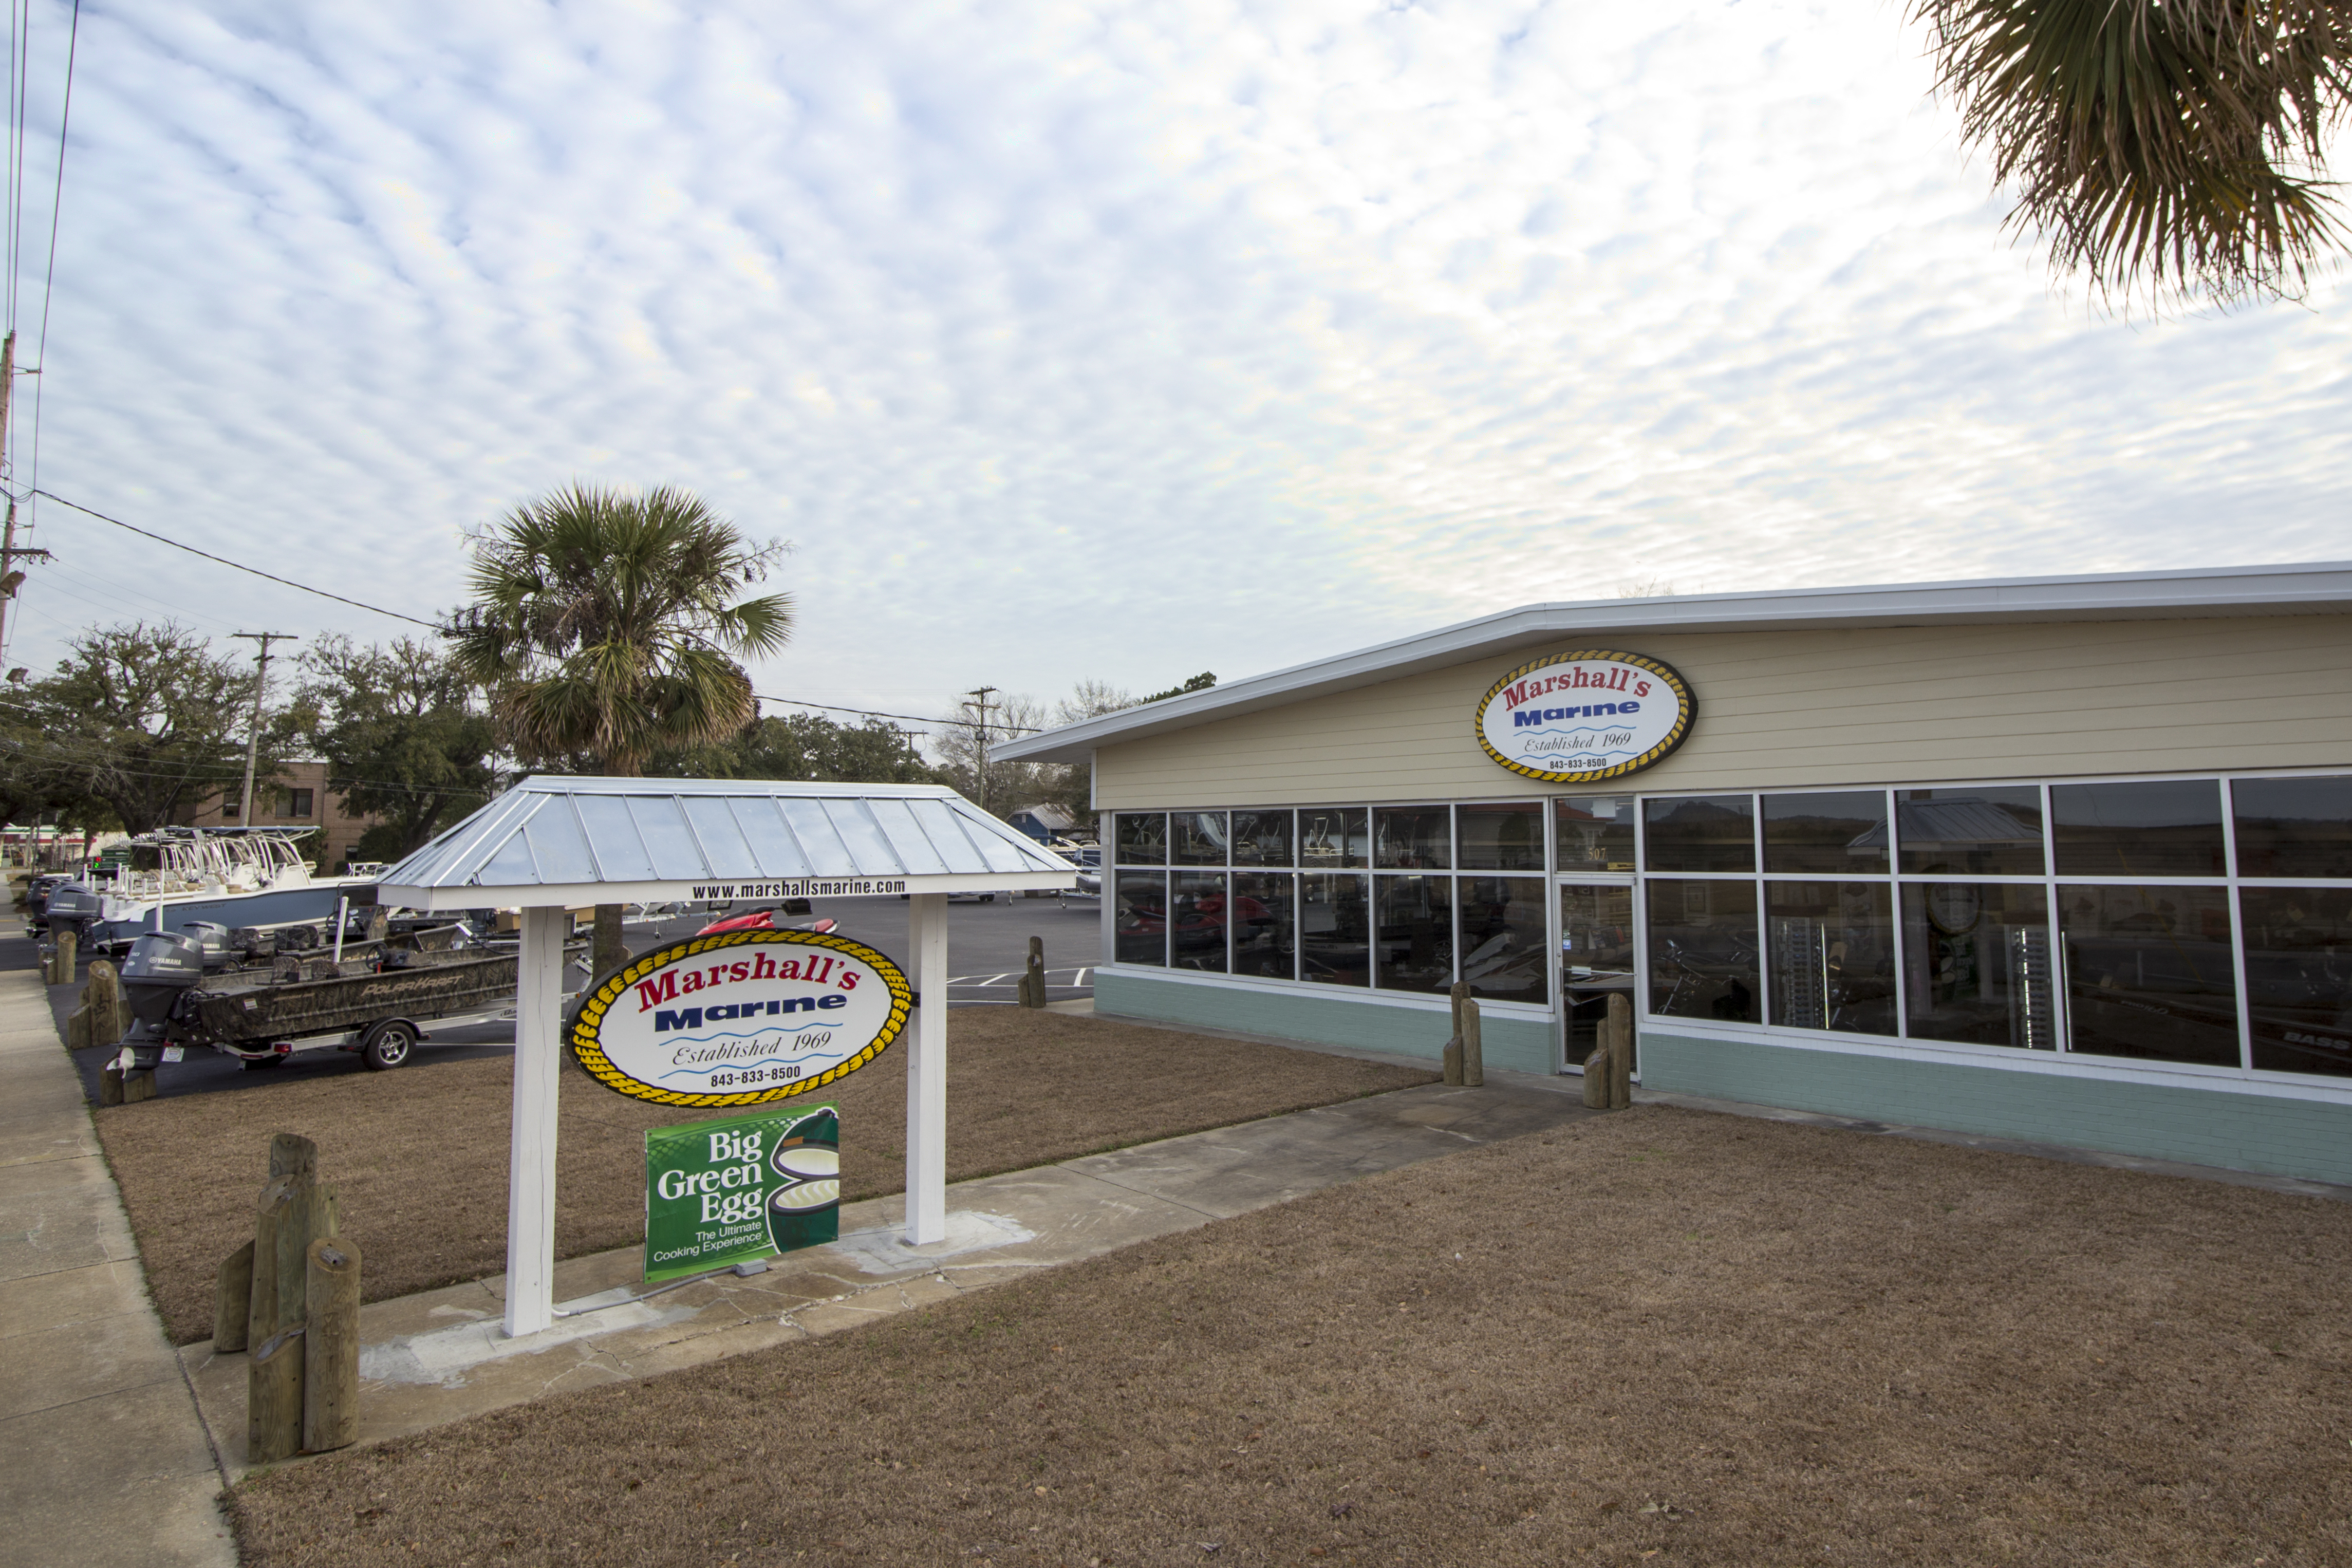 Marshall's Marine Georgetown SC Boat Superstore best selection key west columbia pics google business view (21)